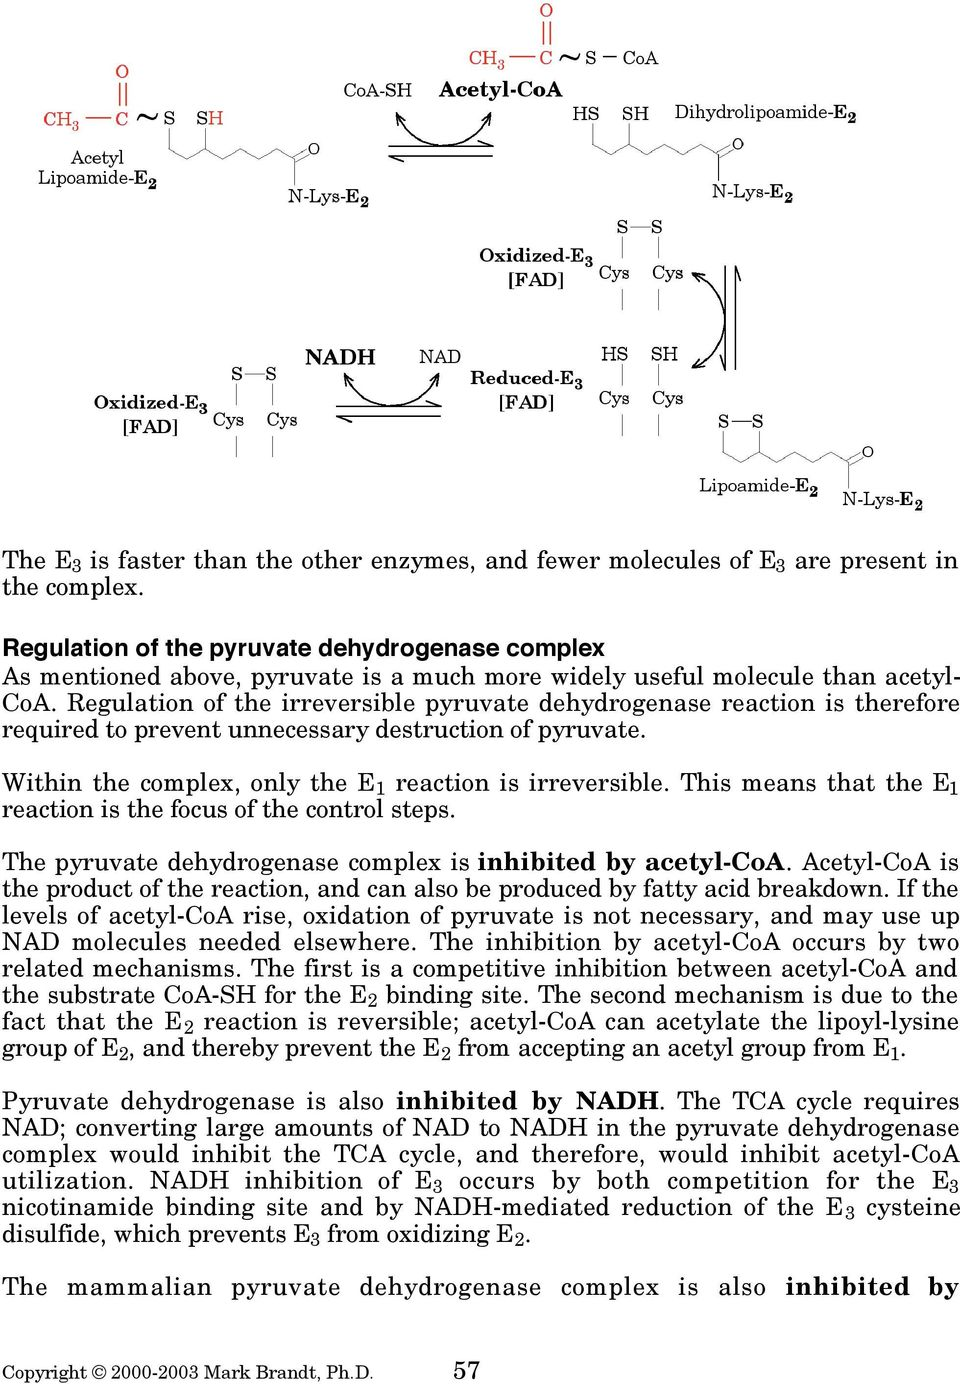 Regulation of the irreversible pyruvate dehydrogenase reaction is therefore required to prevent unnecessary destruction of pyruvate. Within the complex, only the E 1 reaction is irreversible.